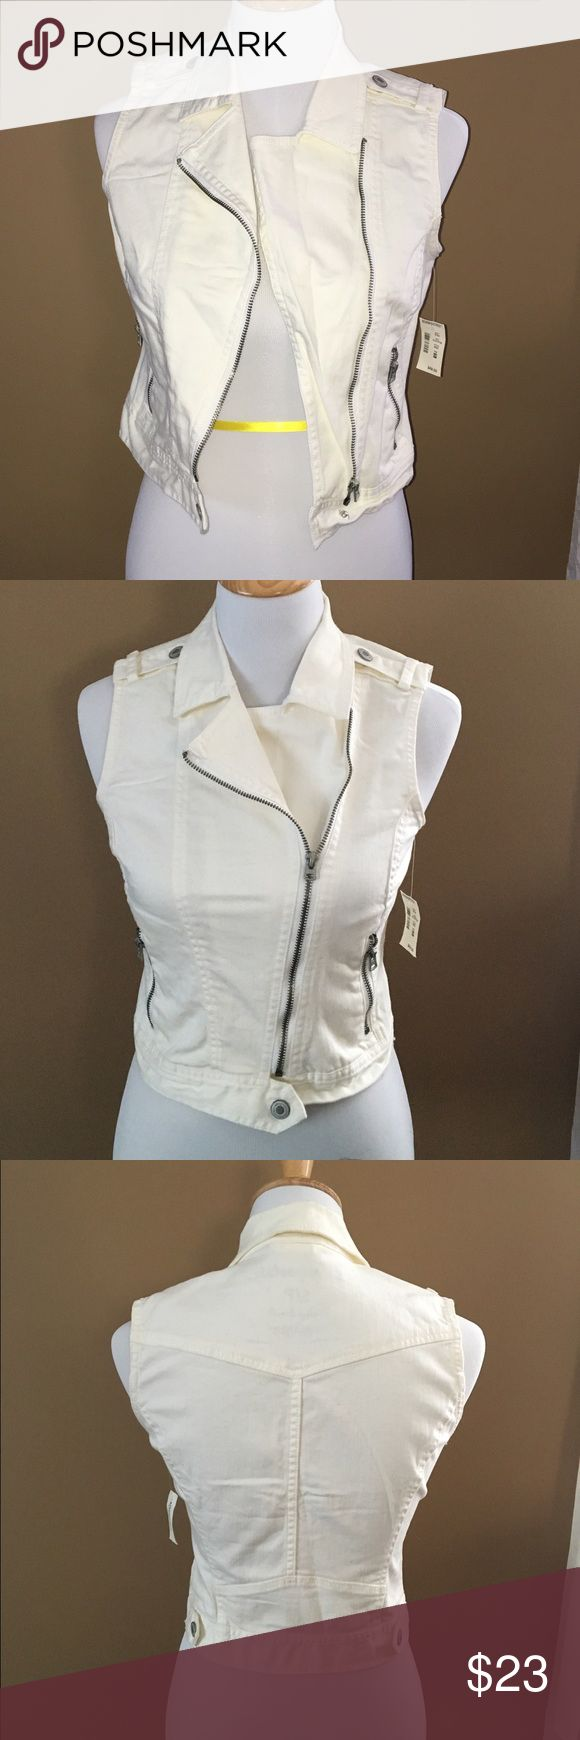 Aeropostale White denim zipper vest size small Aeropostale white asymmetrical zipper vest with zipper pockets. New with tags! This vest has been hanging in my closet for a long time, never worn. The style to this vest is perfect! Aeropostale Jackets & Coats Vests